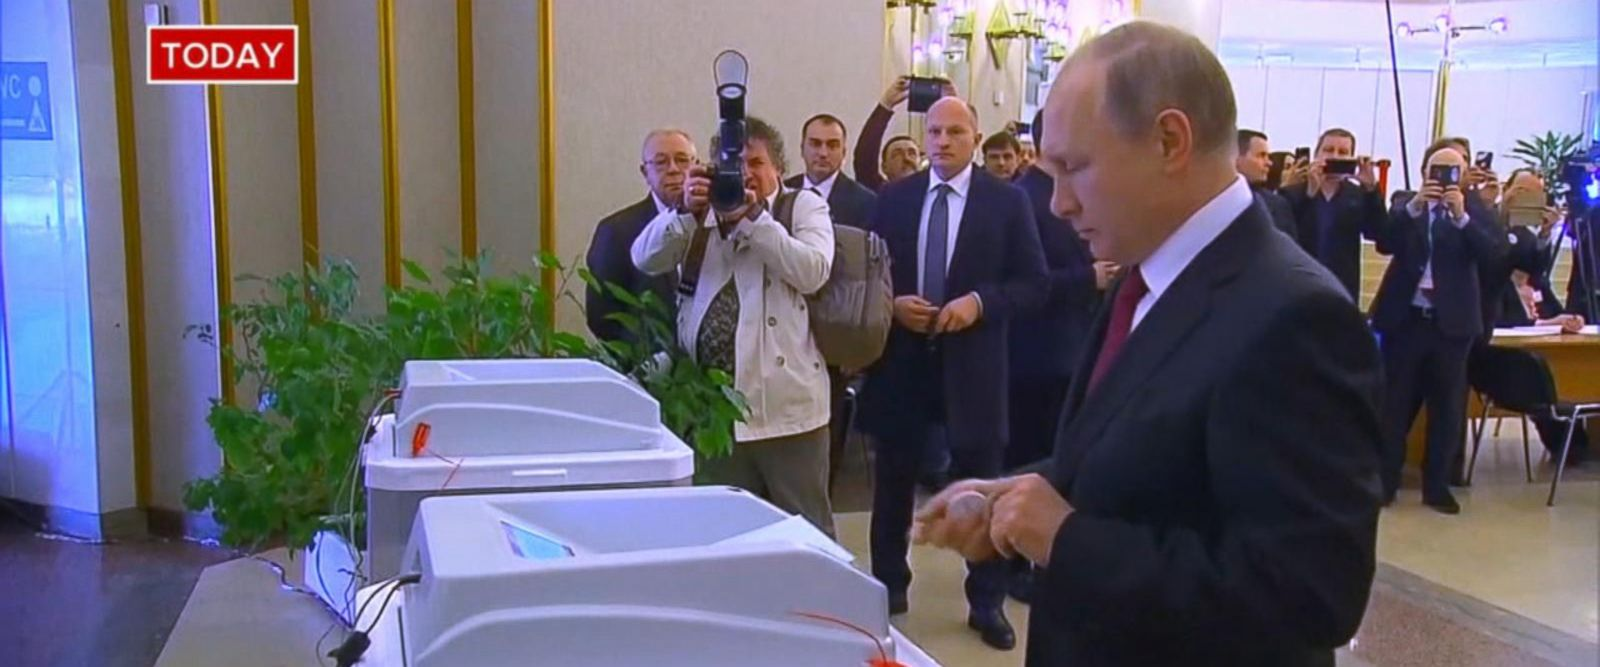 VIDEO: Russians head to the polls to vote, but Putin expected to easily remain in power